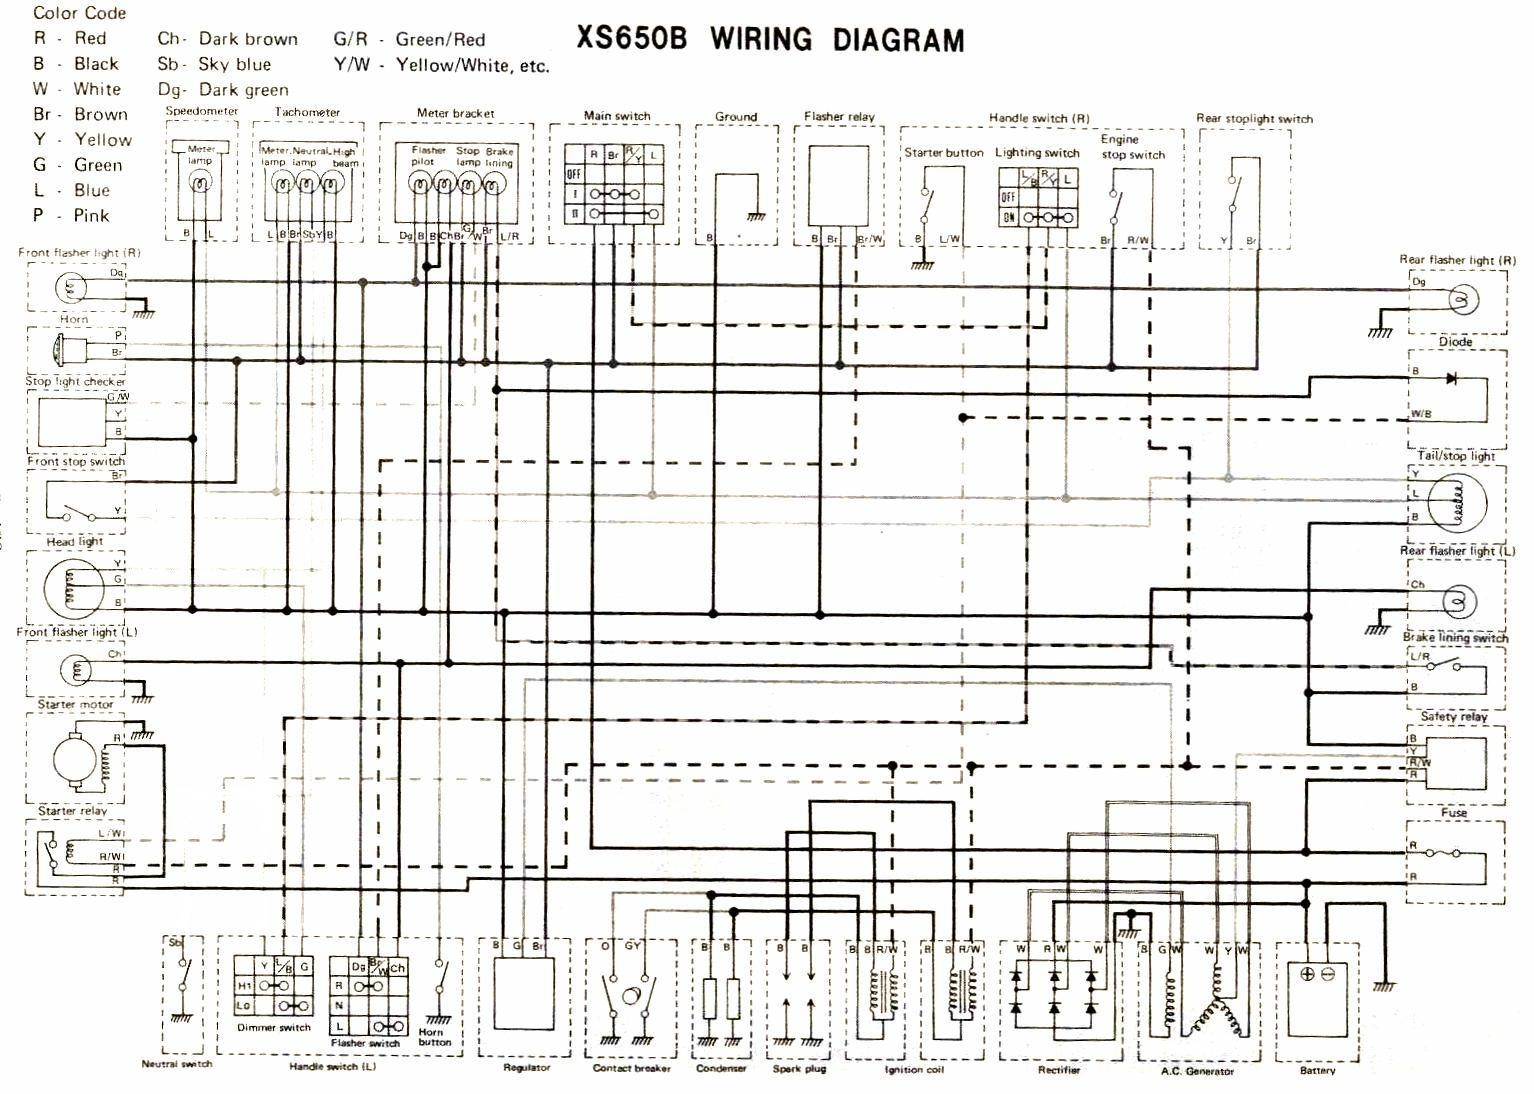 2010 yamaha v star 250 wiring diagram yamaha v star 950 wiring diagram | online wiring diagram